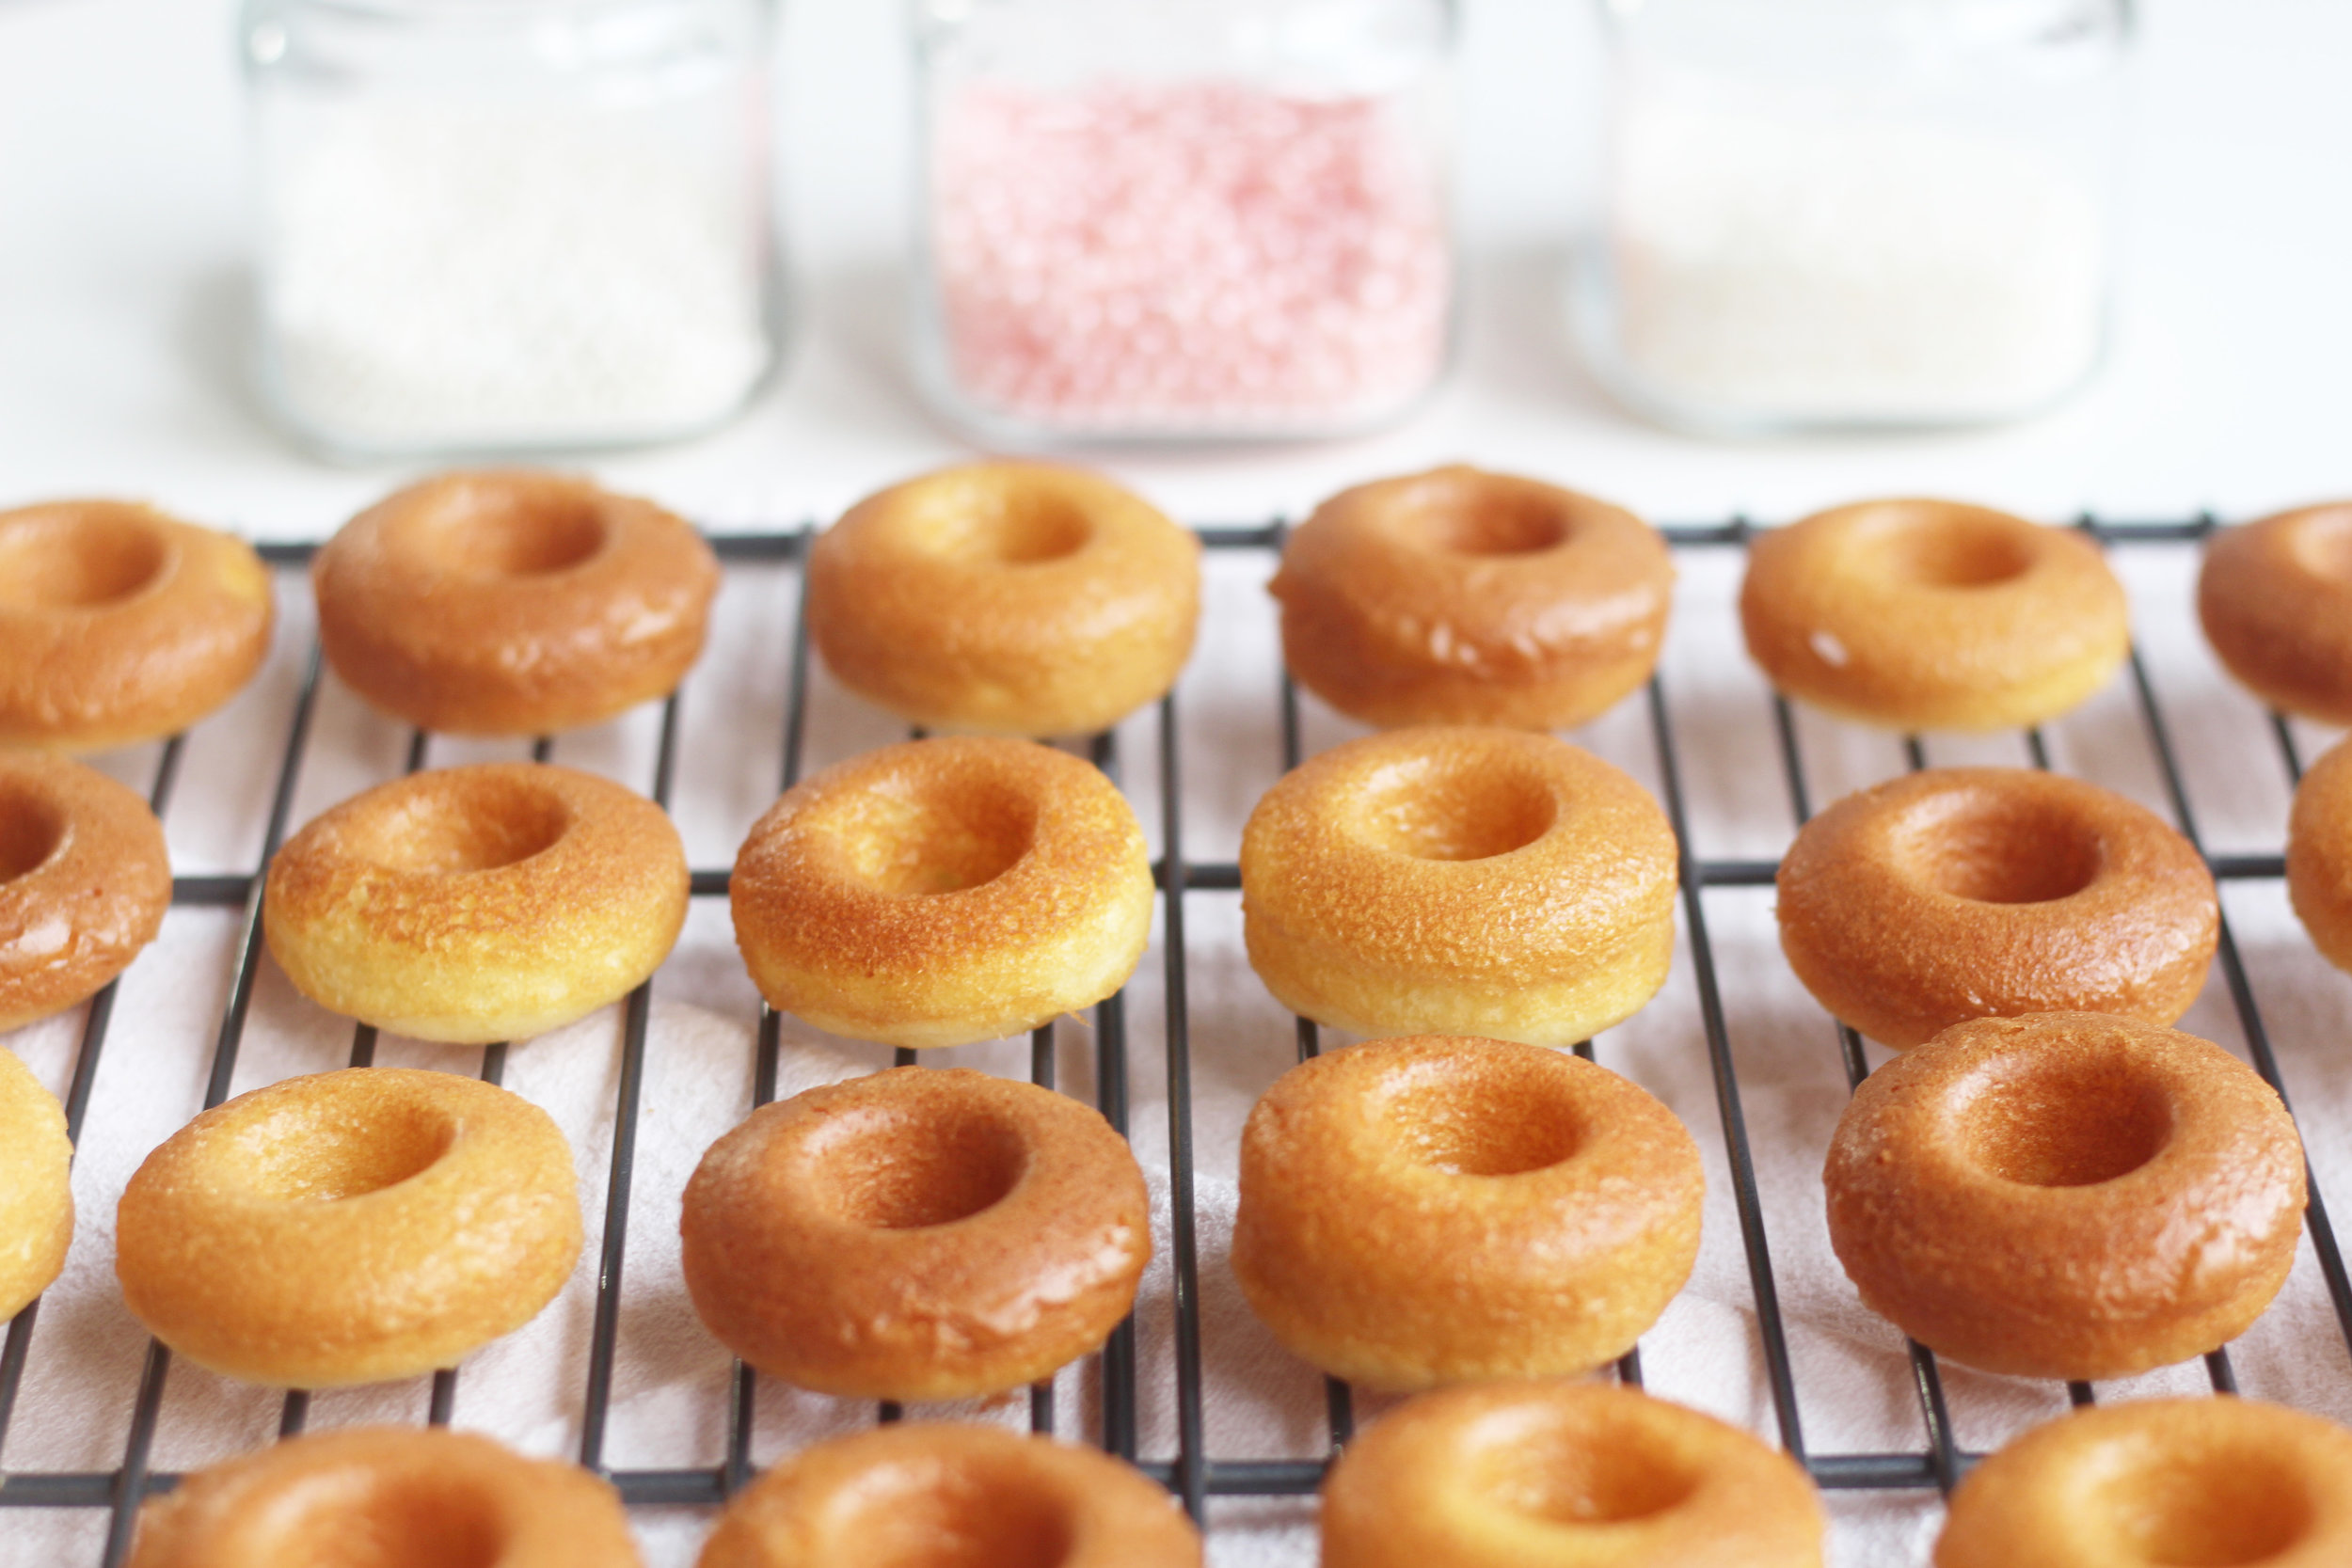 Donuts Cooling Off.jpg